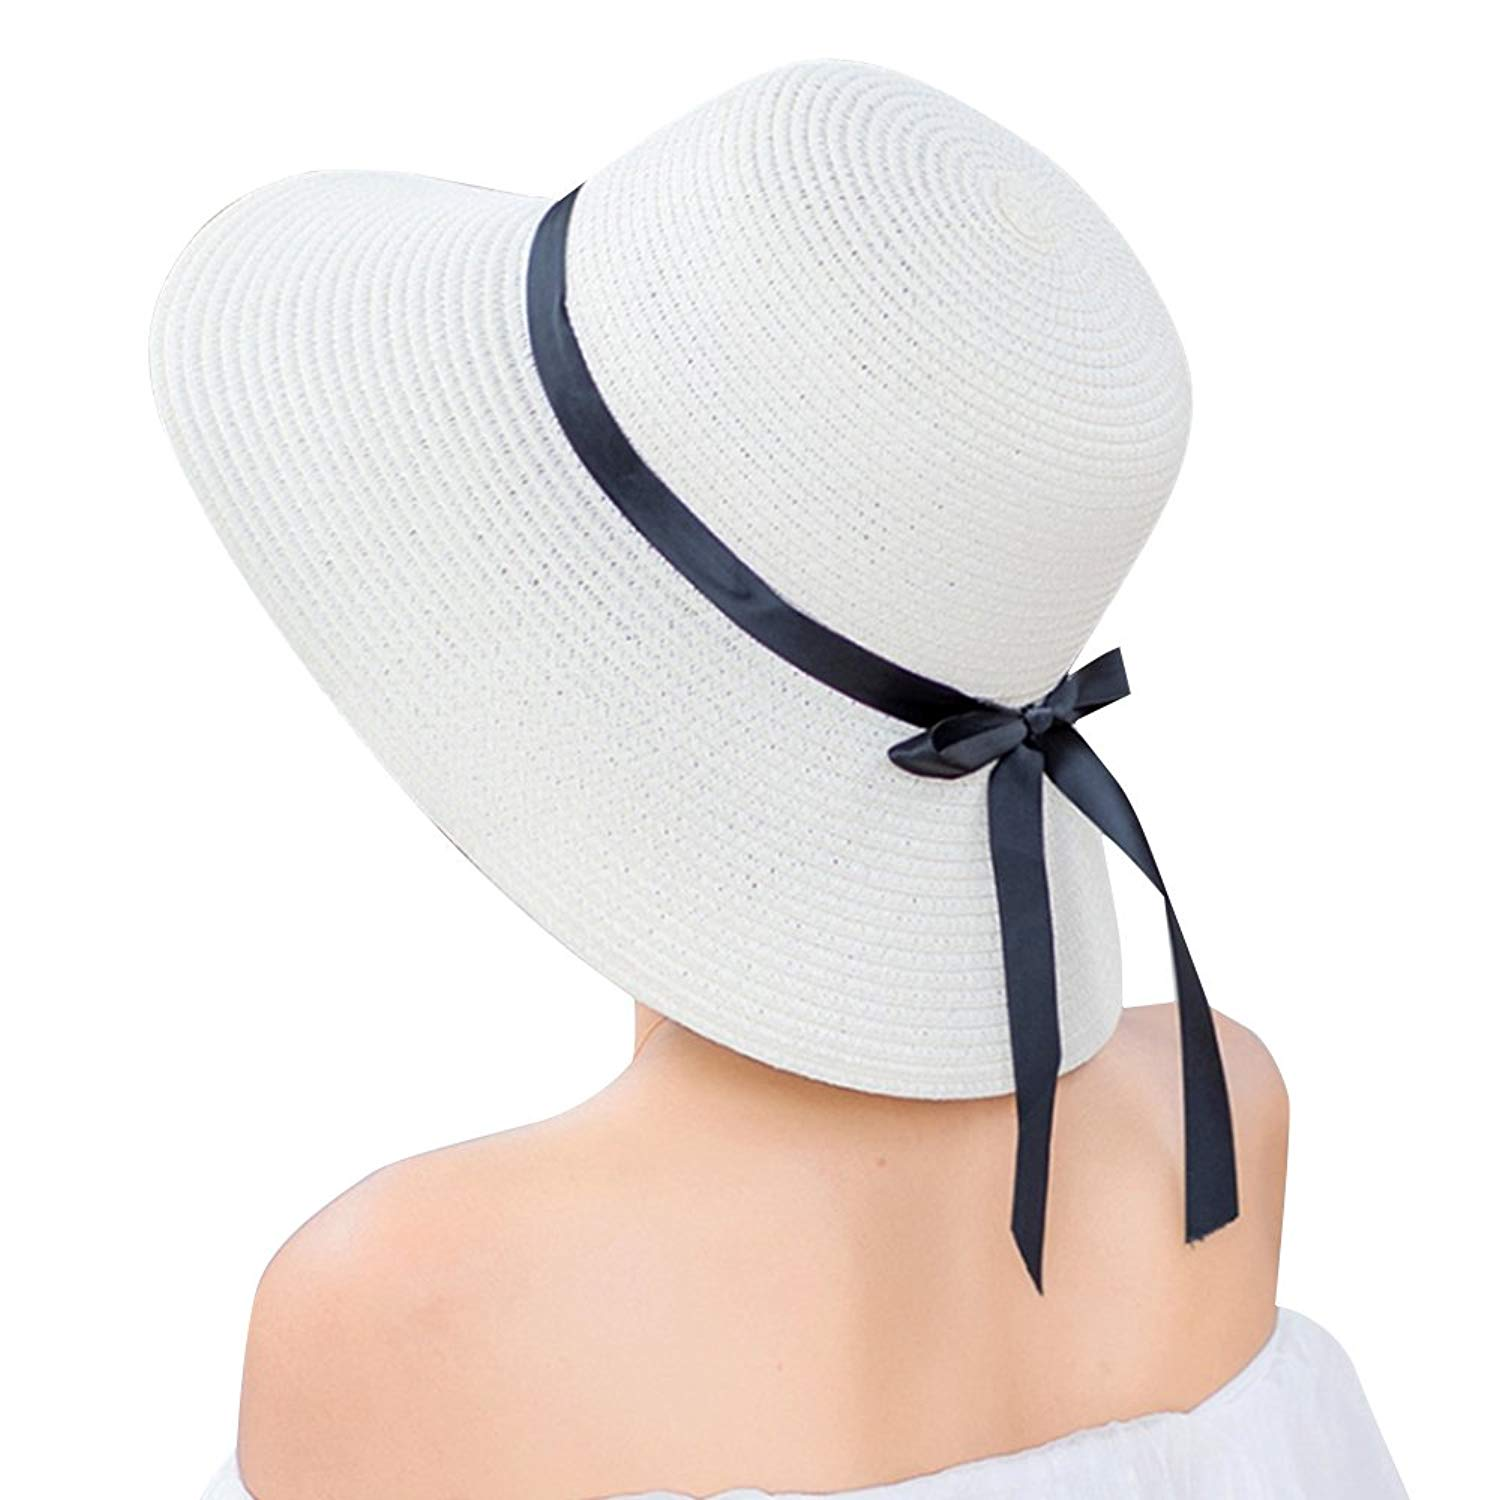 9affd9fb239 Get Quotations · Pevor Women s Summer Big Brim Packable Floppy Sun Hat  Foldable Straw Hat Fedora Travel Beach Hat